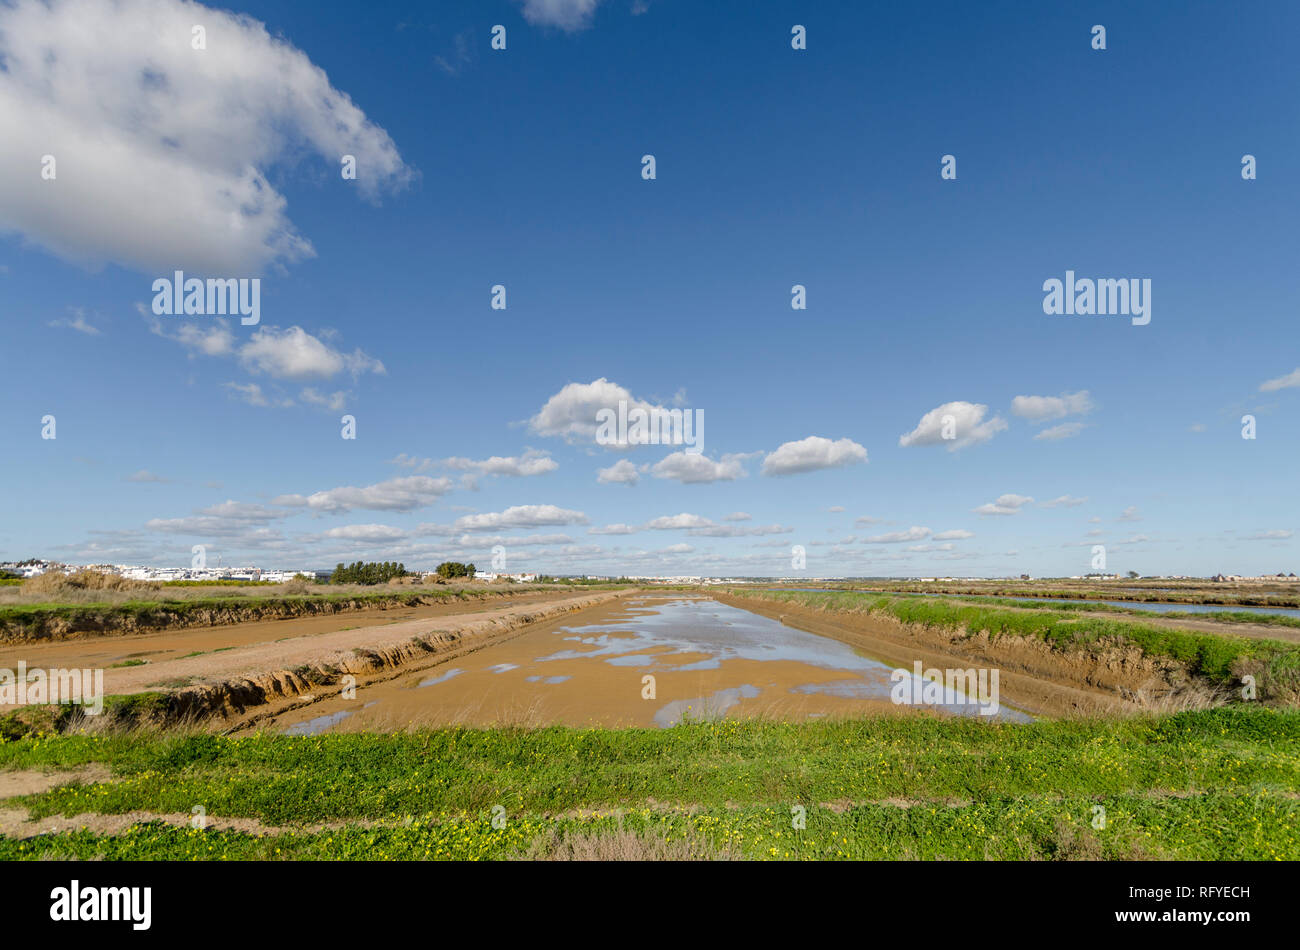 Salt pans, saltmarshes, salt evaporation pond, Tavira, Portugal, Europe. Stock Photo